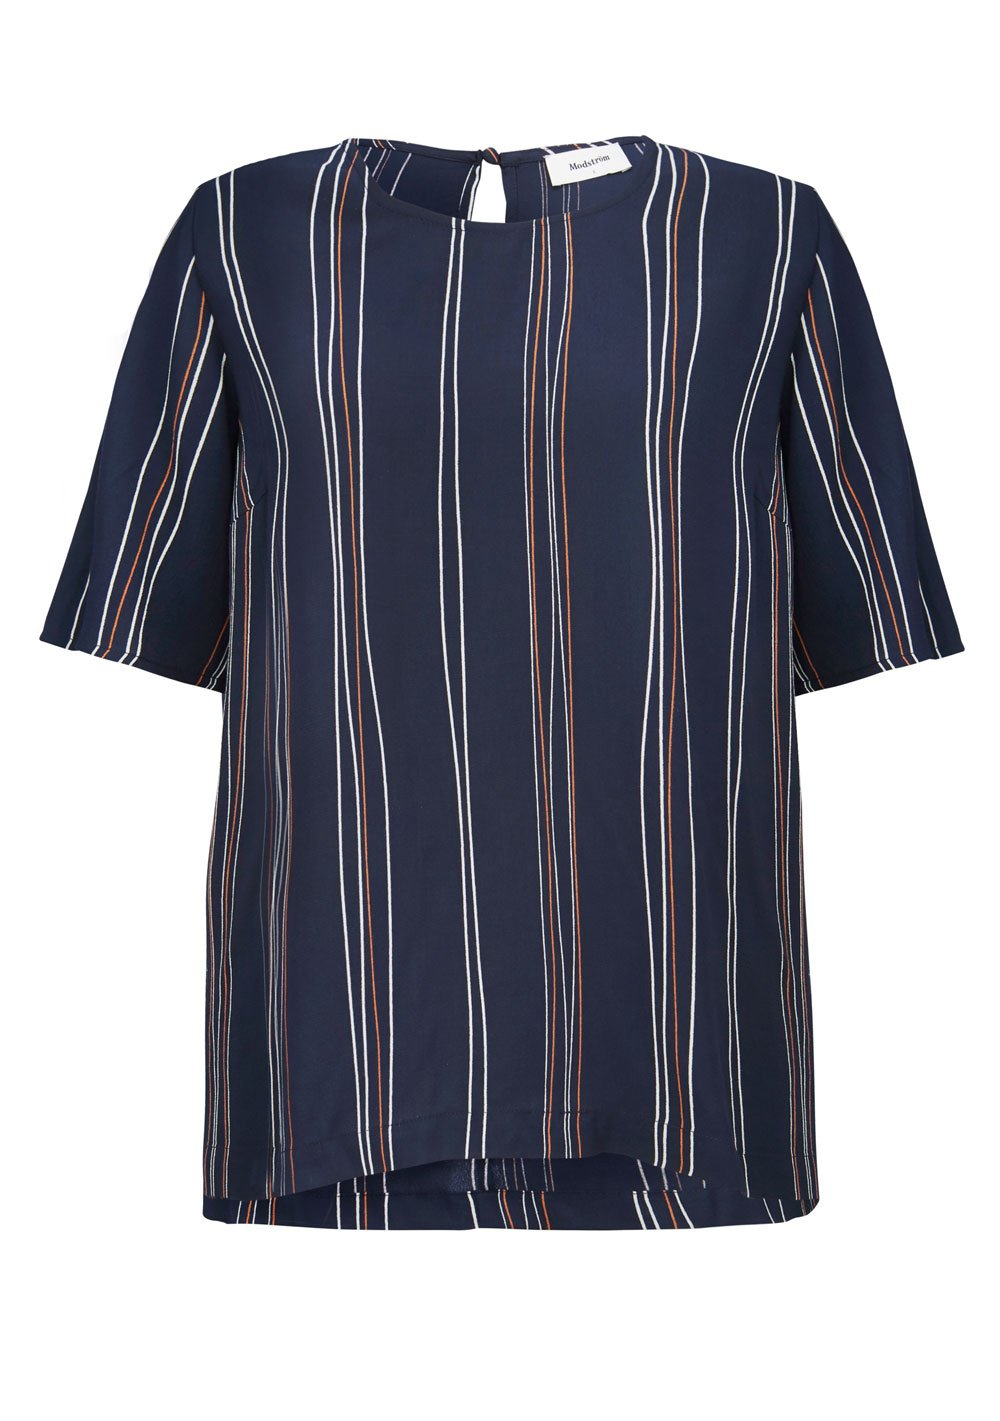 Grazie Print Top - Navy Stripe